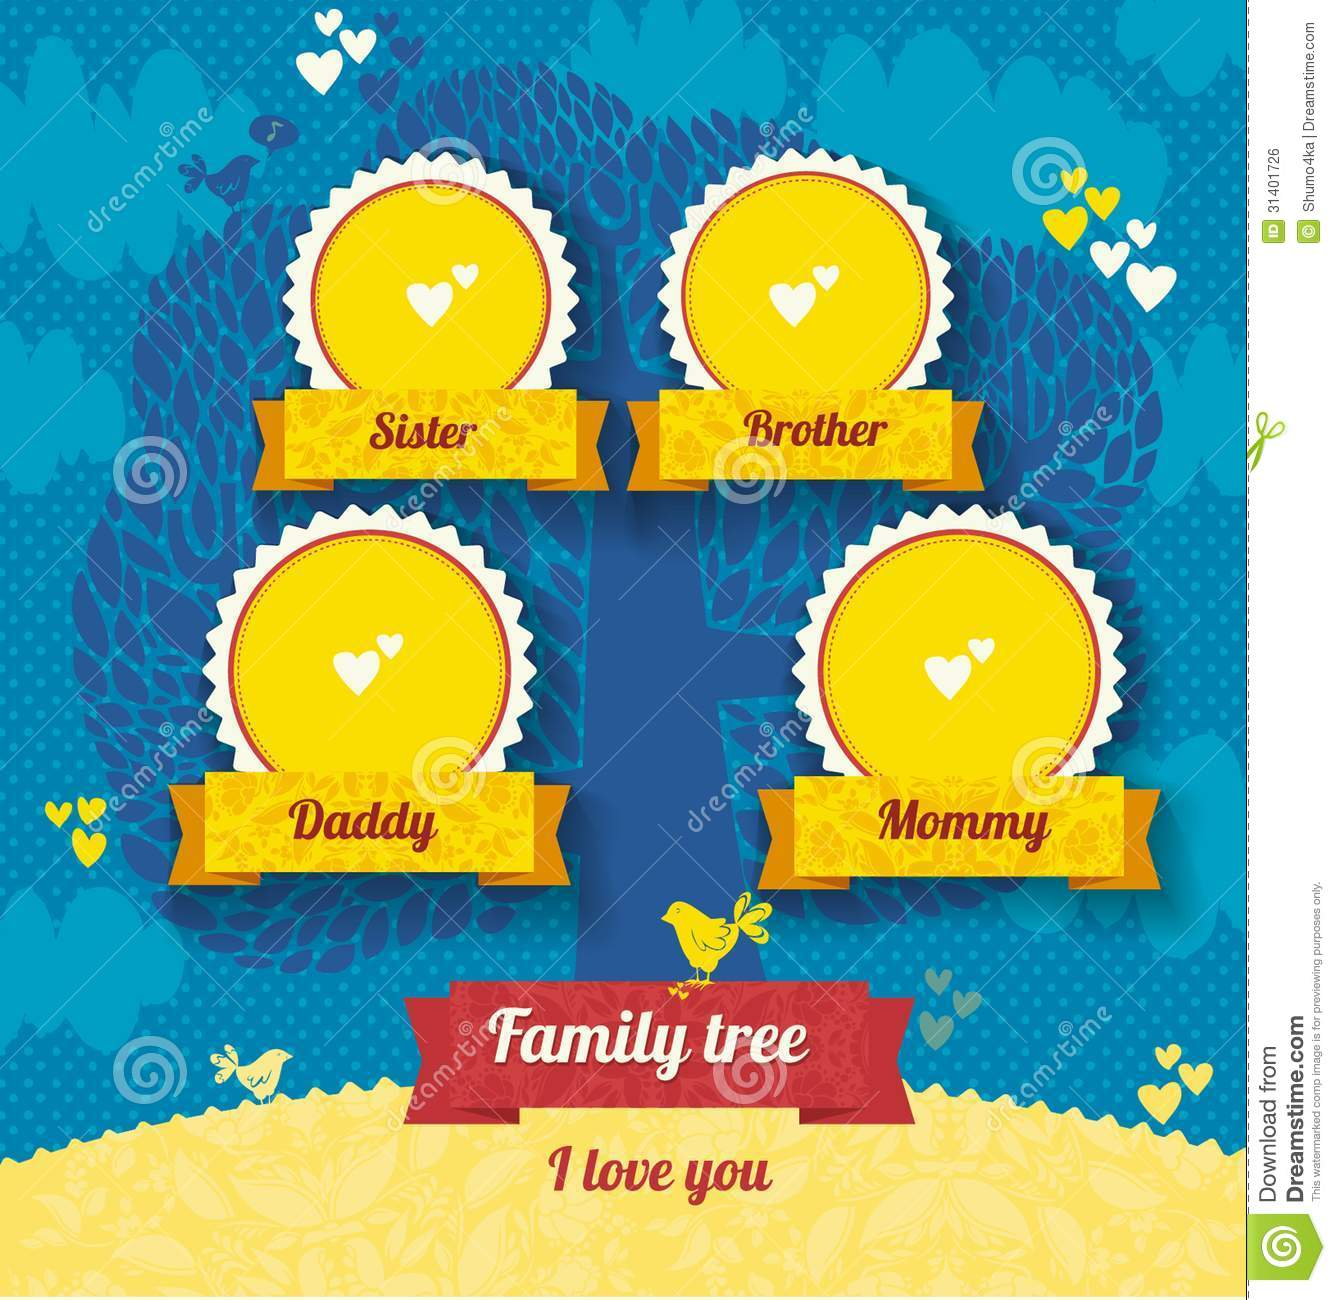 Vector template for family tree stock illustration for Family picture design